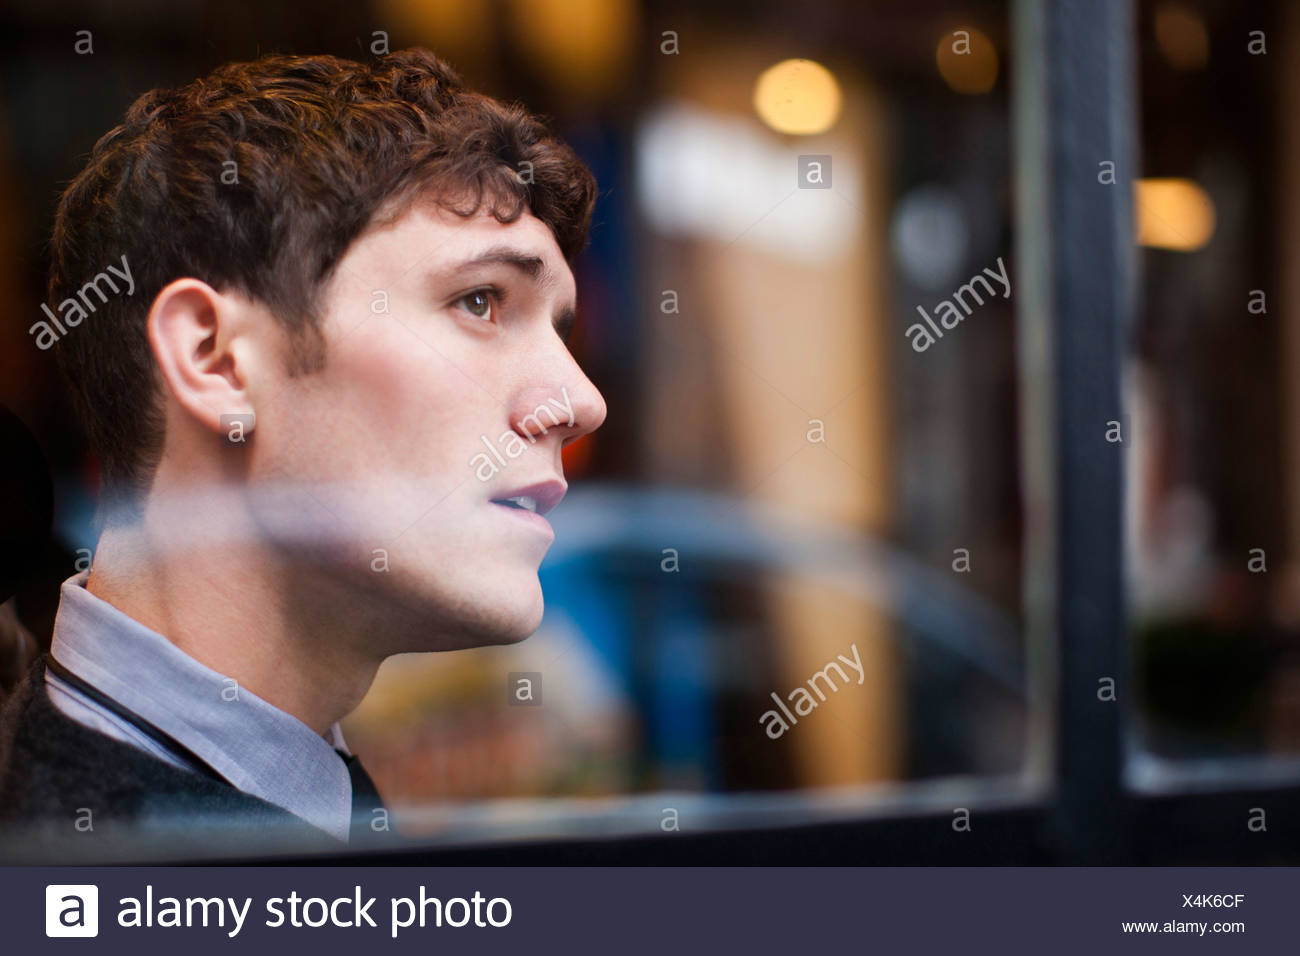 Businessman looking out window - Stock Image